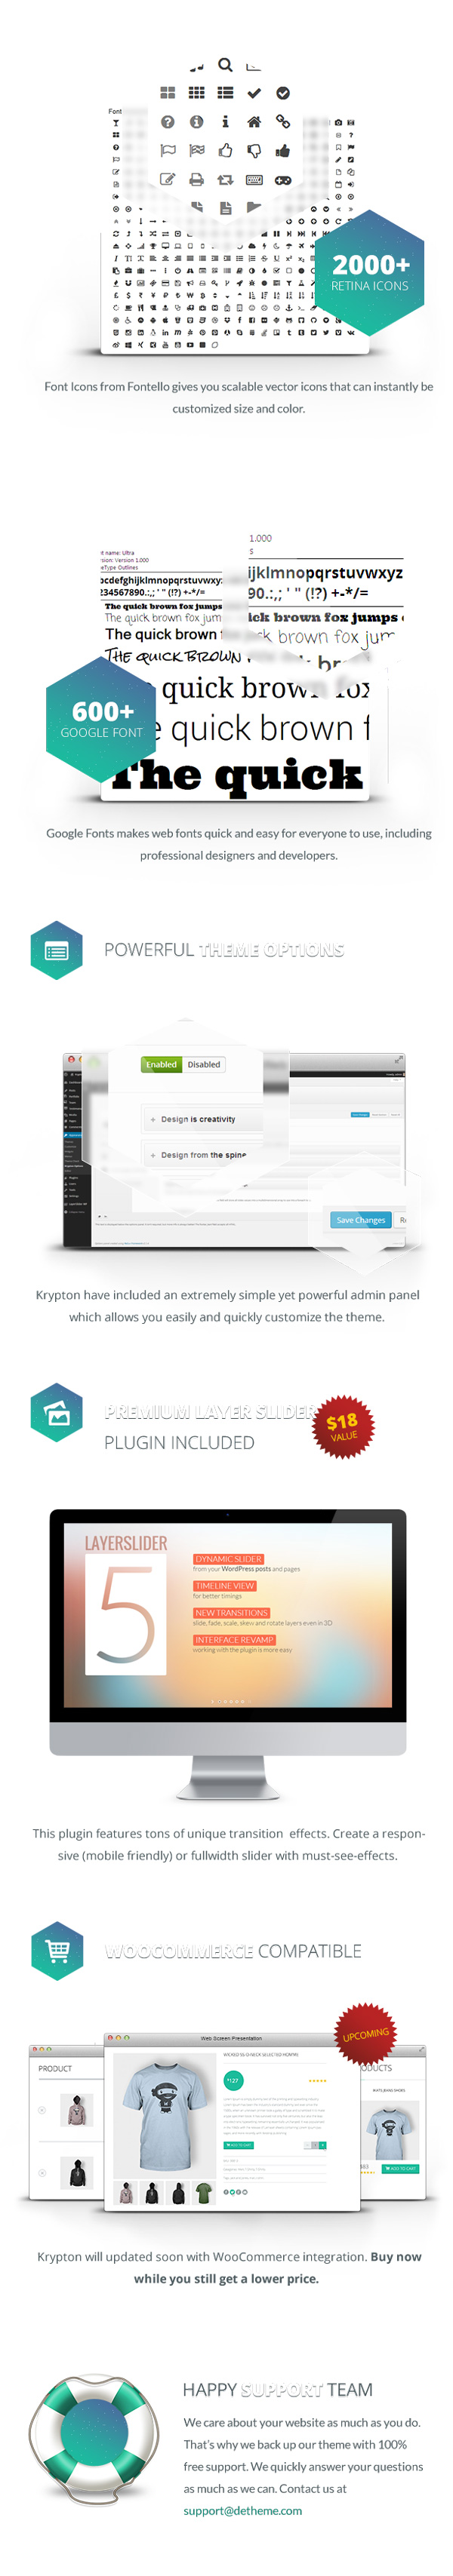 presentation_krypton_wp02